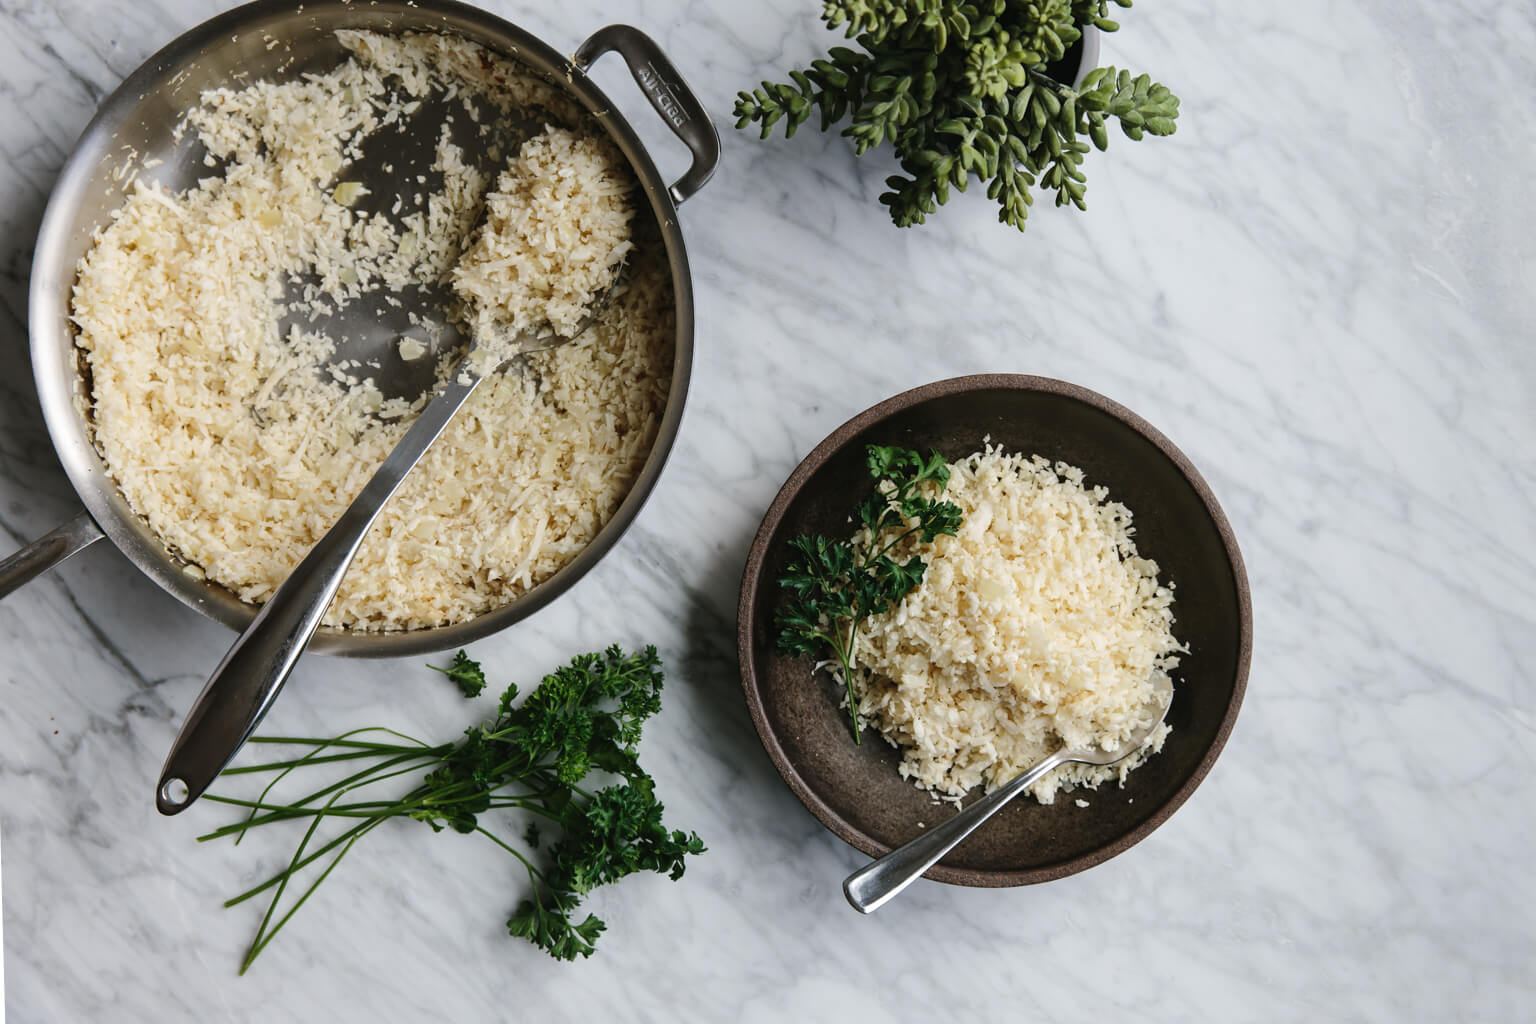 Cauliflower rice is a wonderful low-carb, grain-free, paleo-friendly rice alternative. Learn how to make cauliflower rice at home.